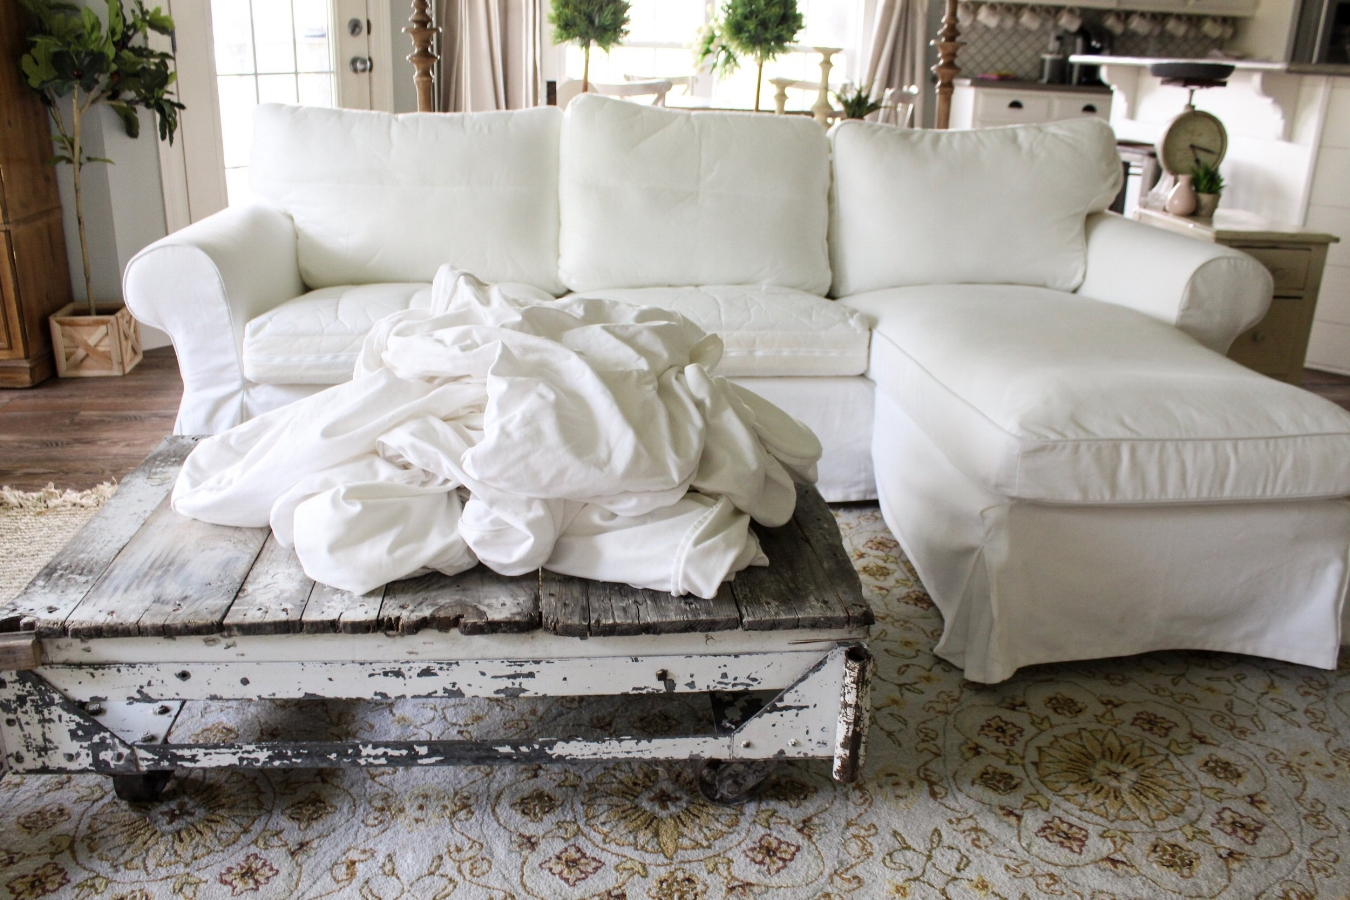 Ektorp Slipcovers How The Heck I Maintain White Furniture With Four Kids A Review